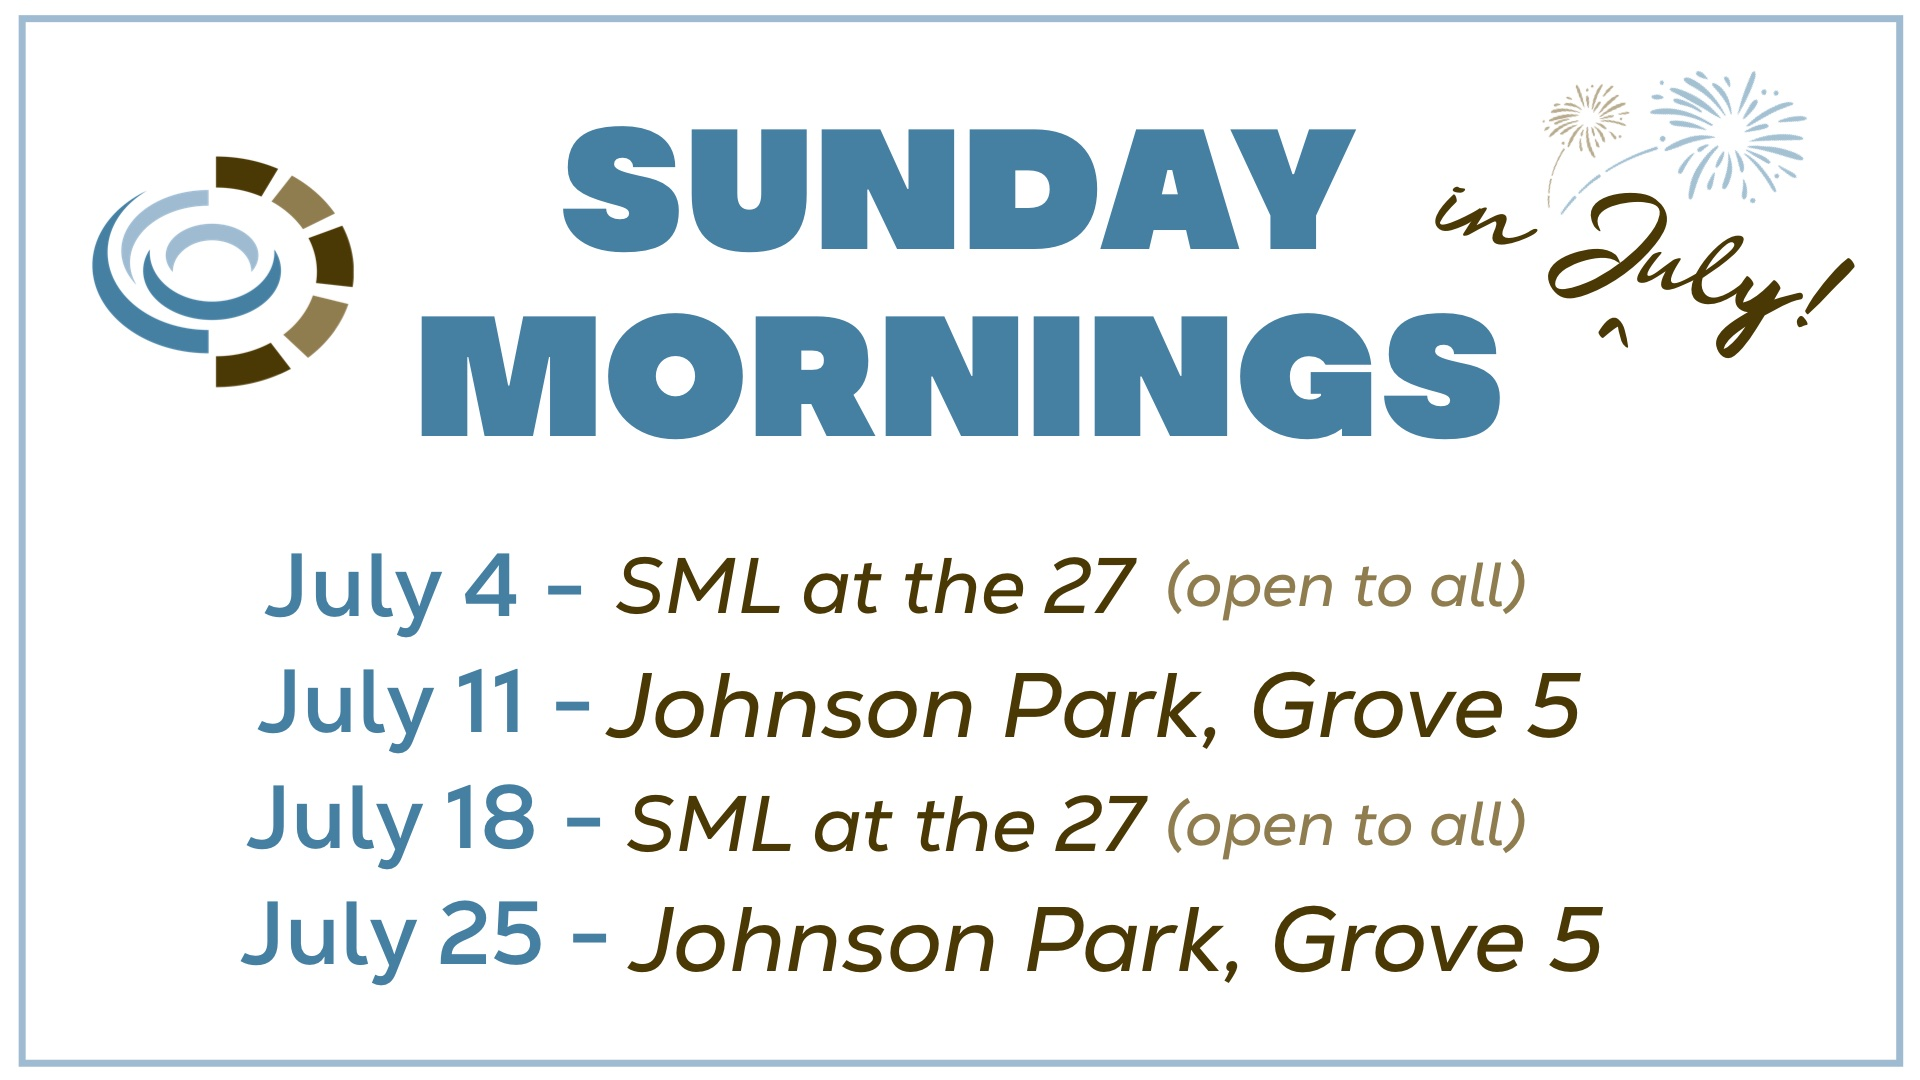 Sunday Mornings in July - gathering space size